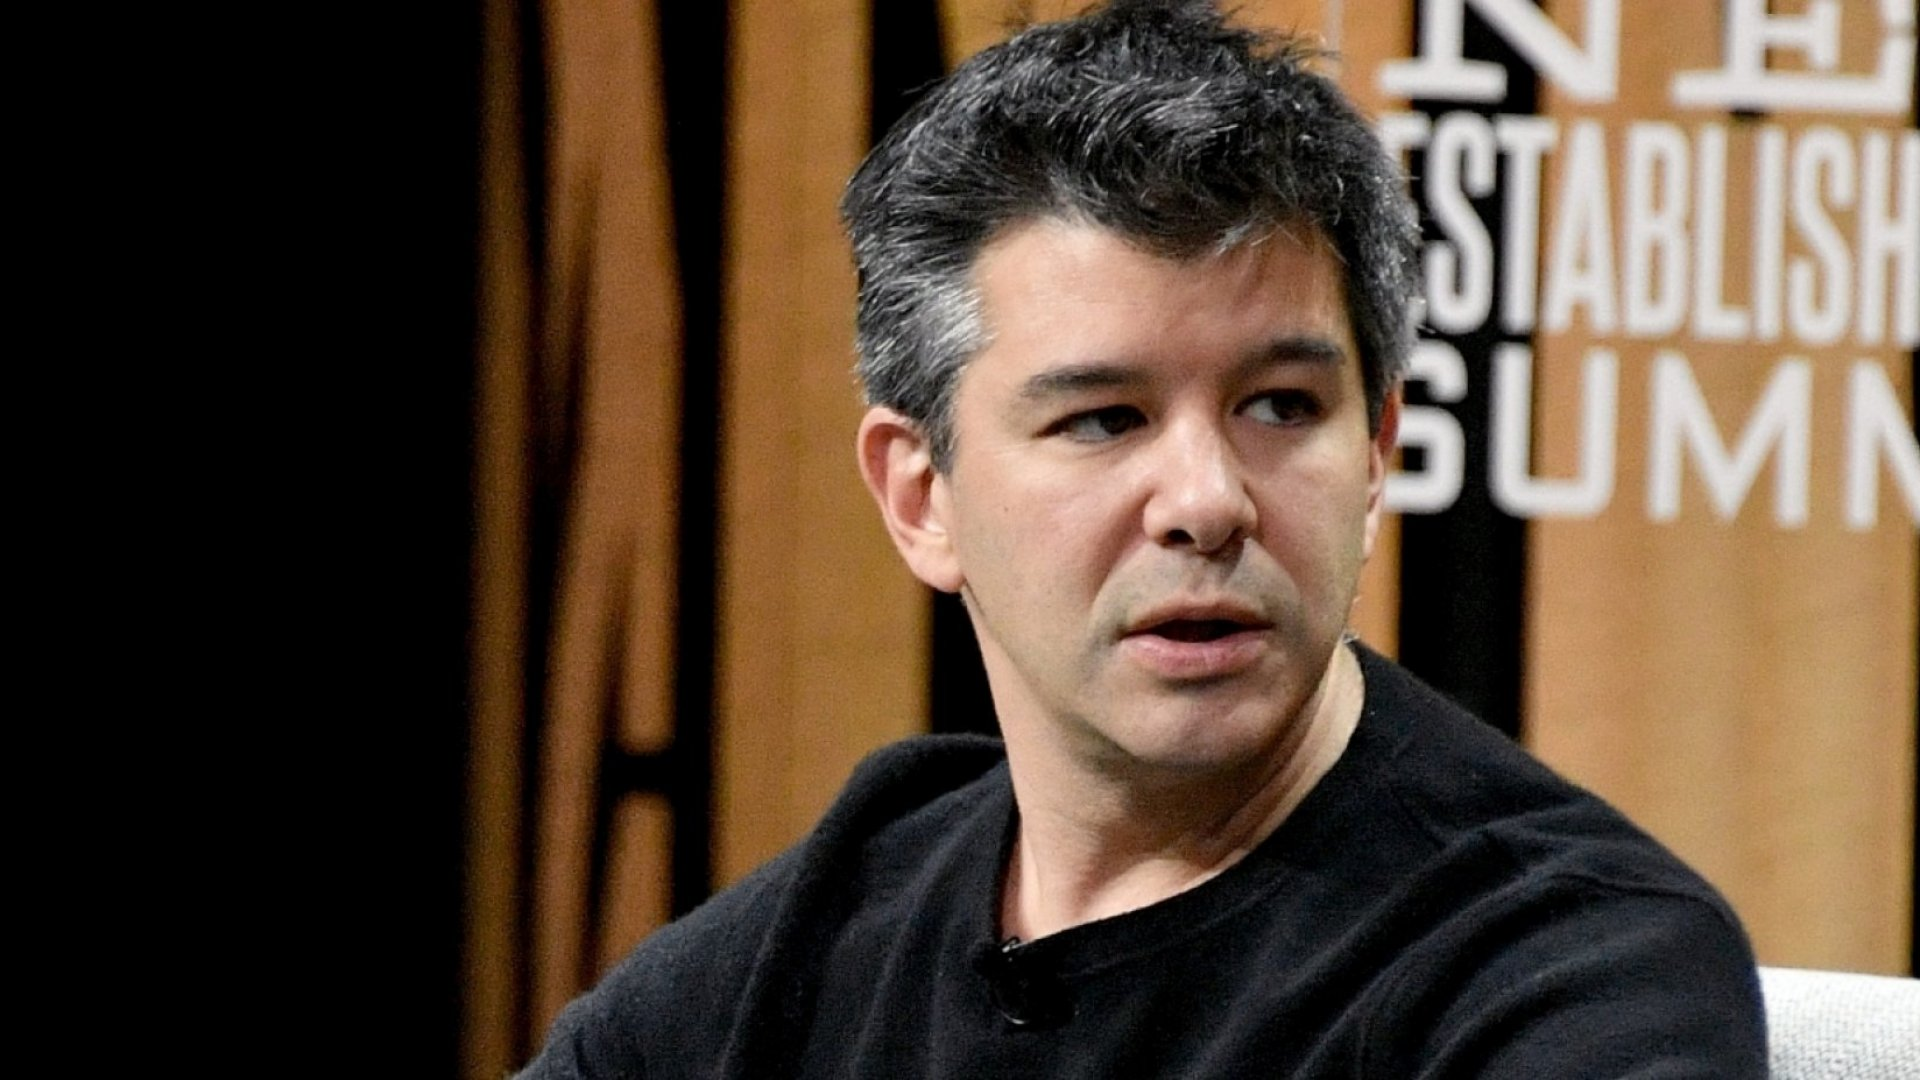 Early Uber Investor Sues Former CEO Travis Kalanick for Fraud